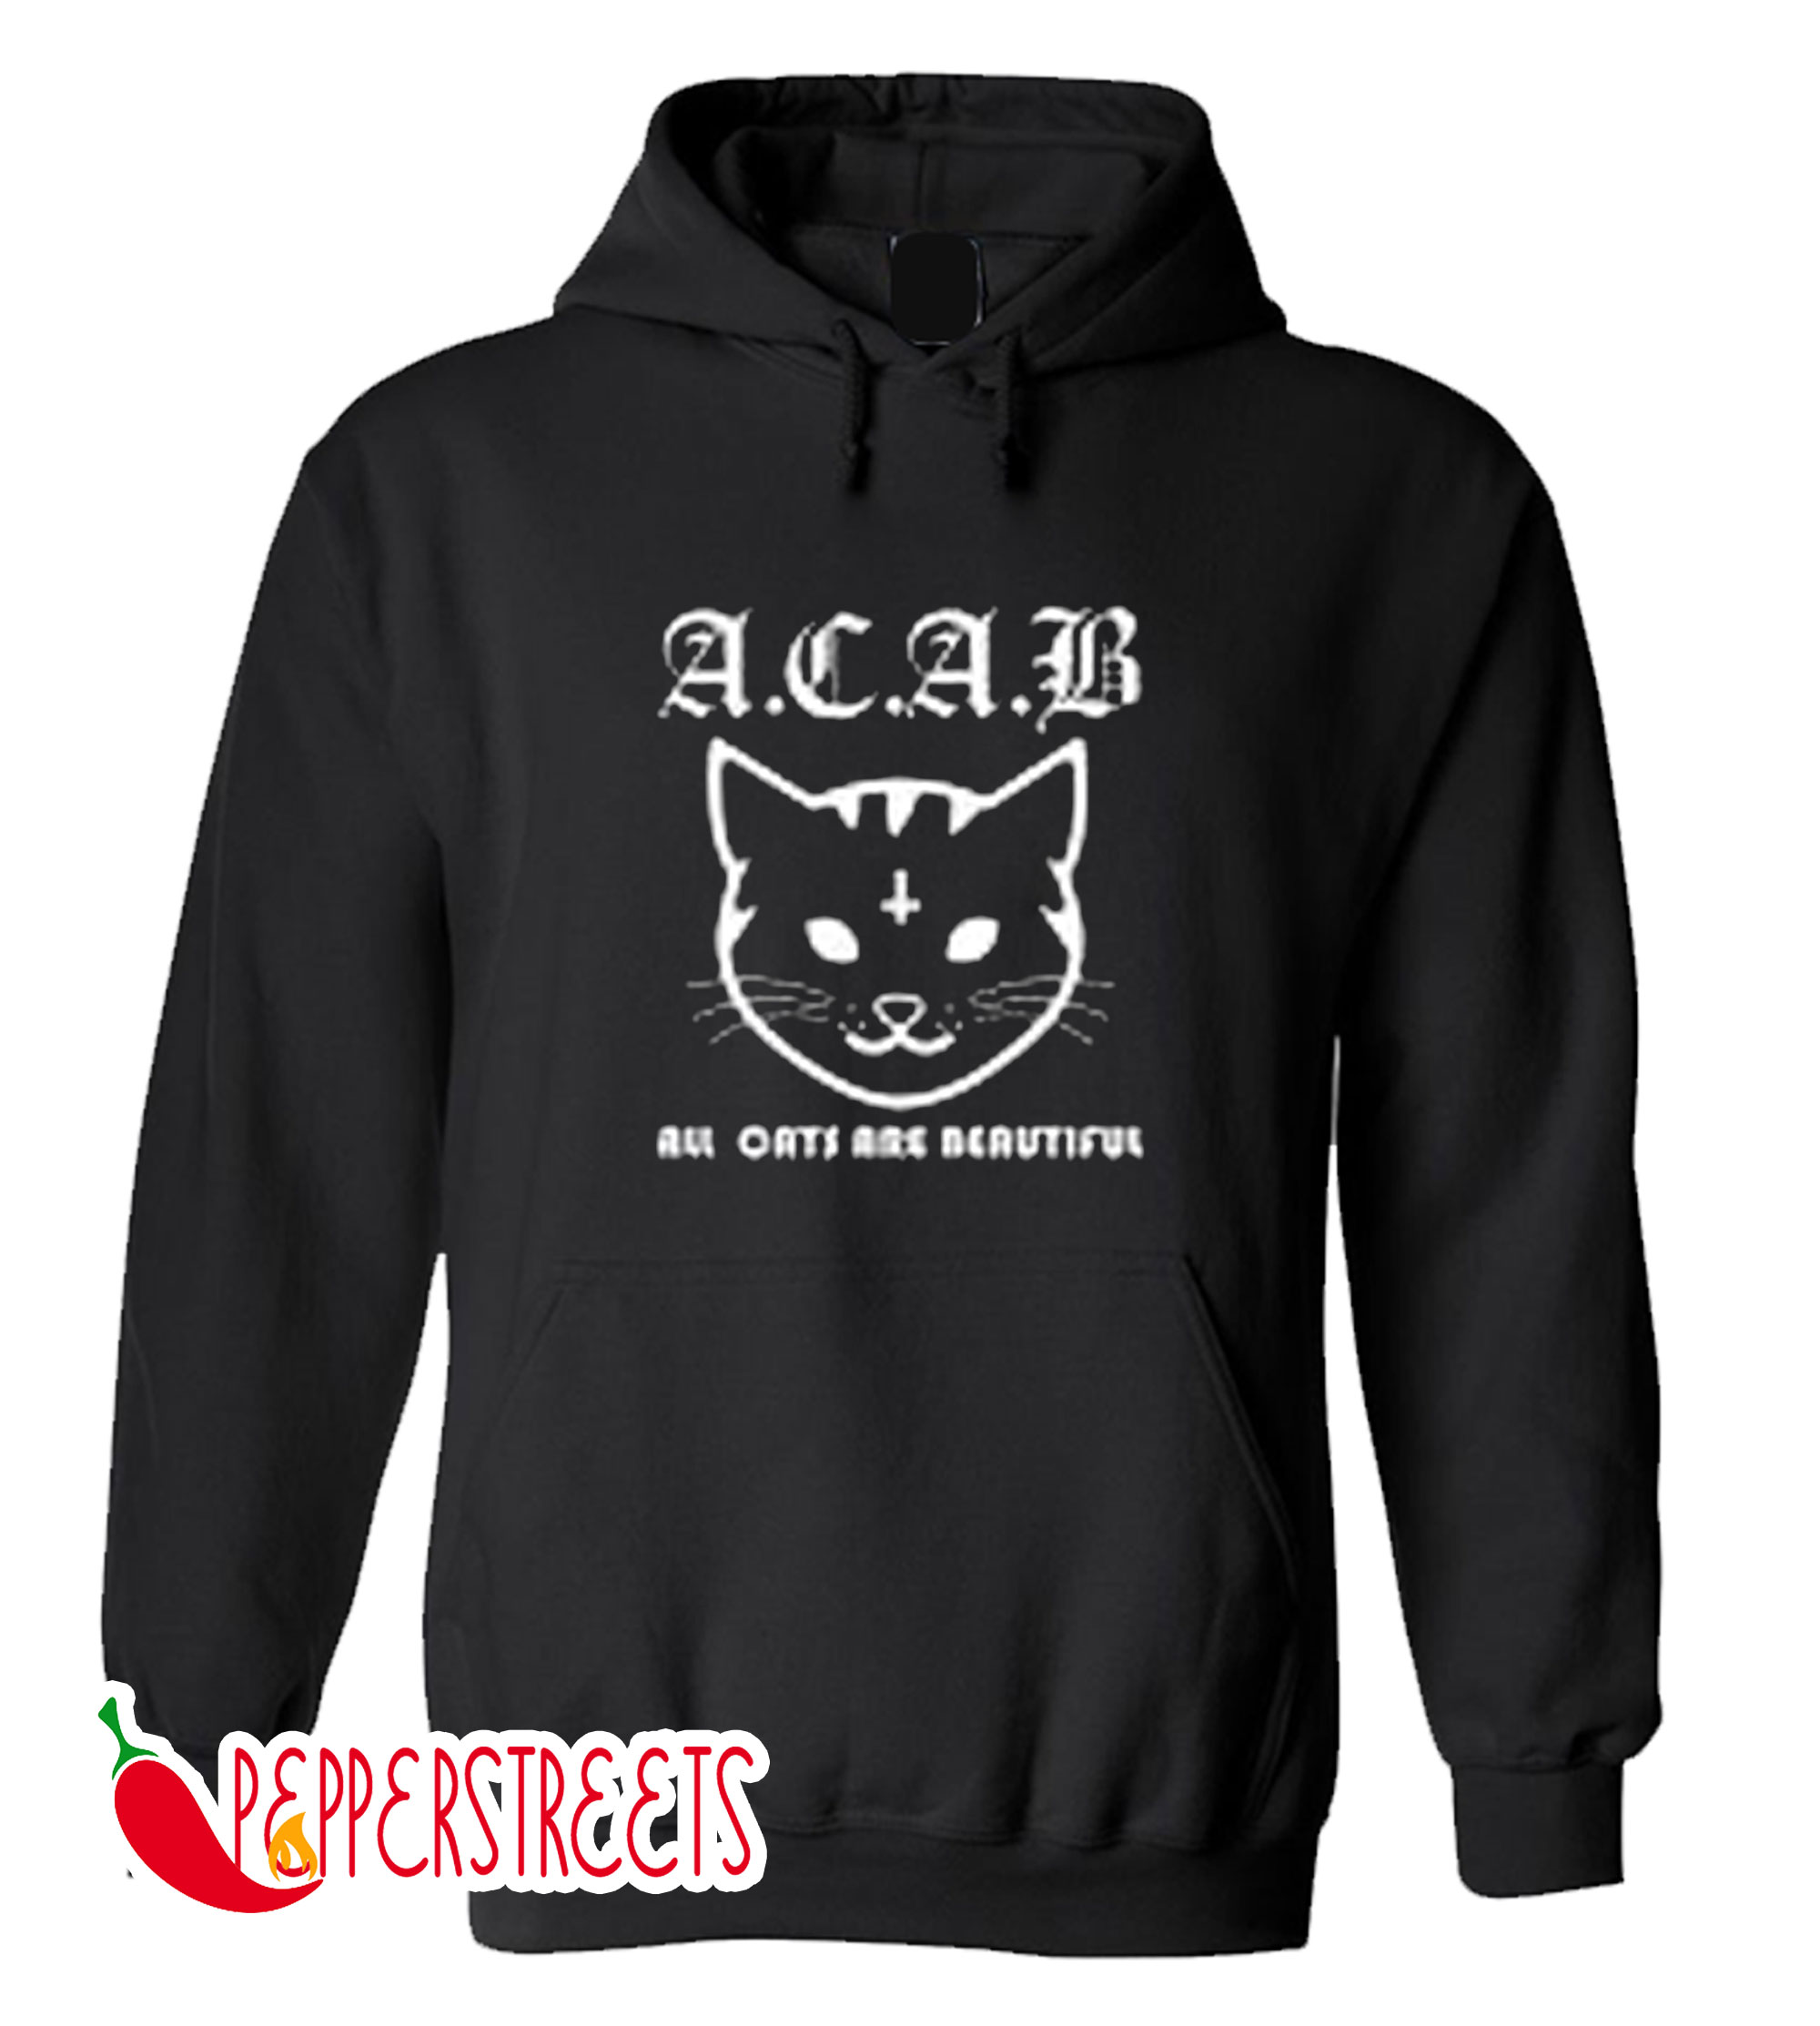 All Cats Are Beautifu Hoodie